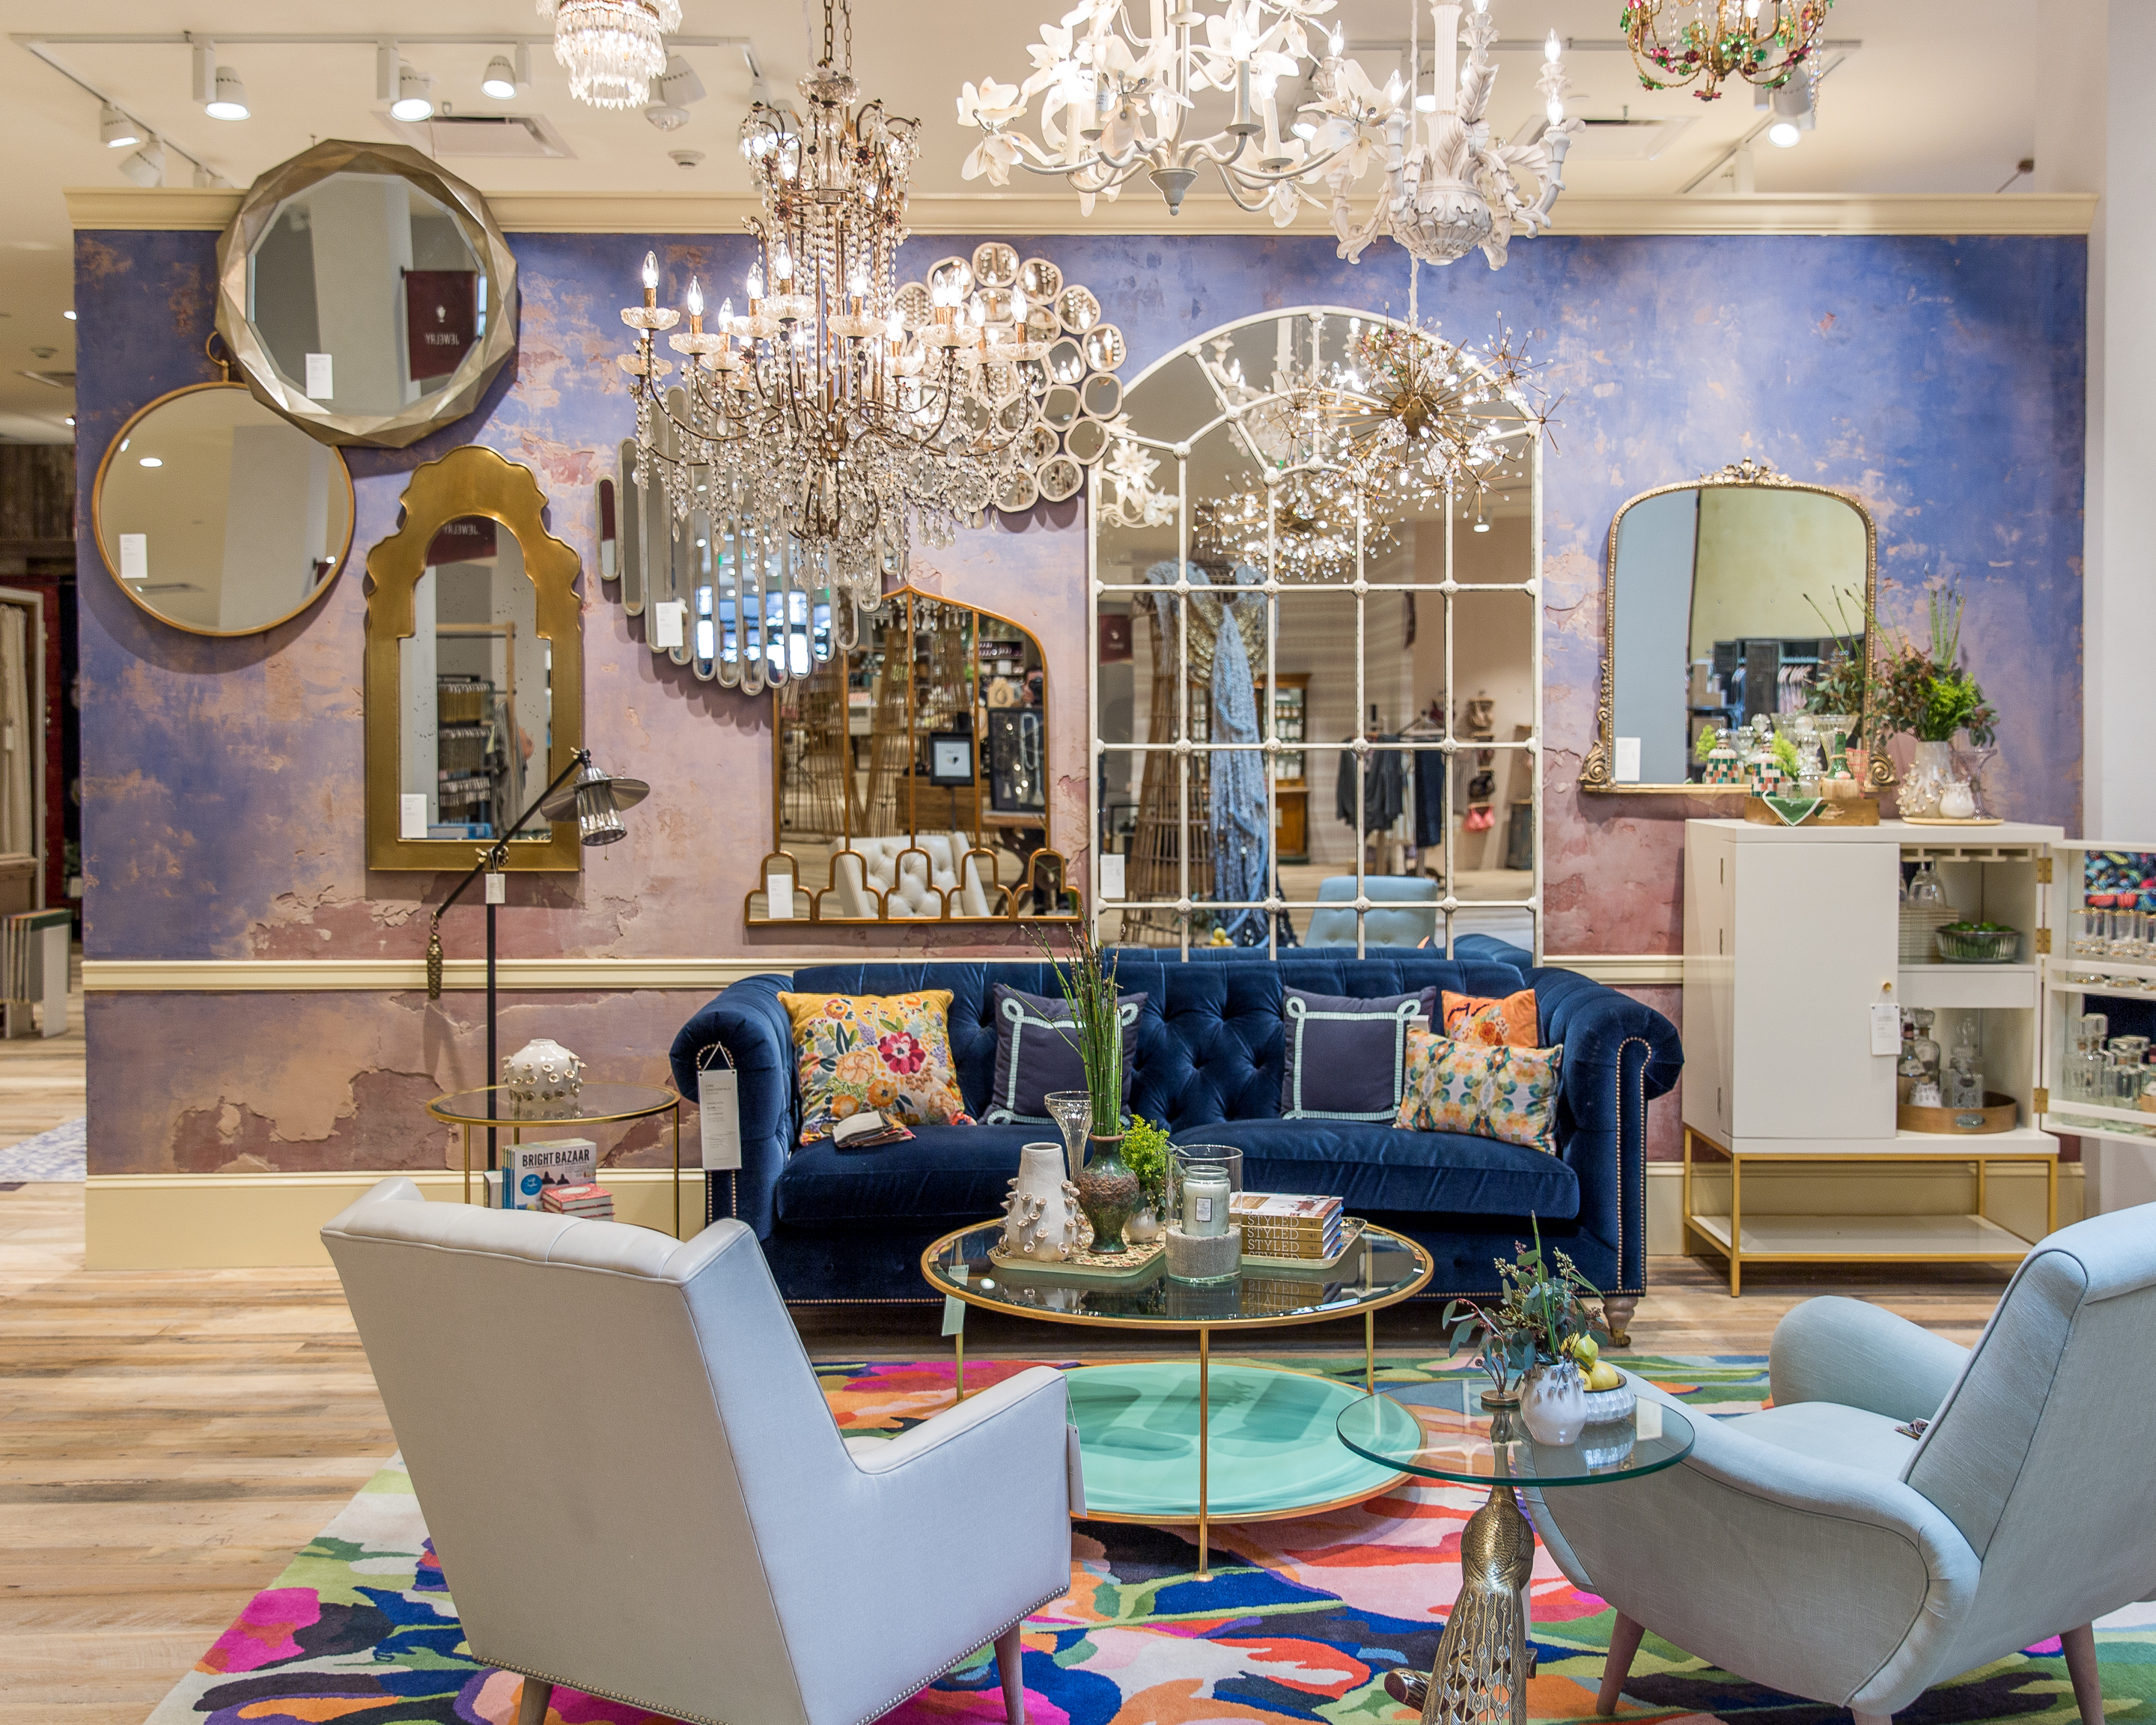 Room Decor: Anthropologie's Upgraded Newport Beach Store Offers Major